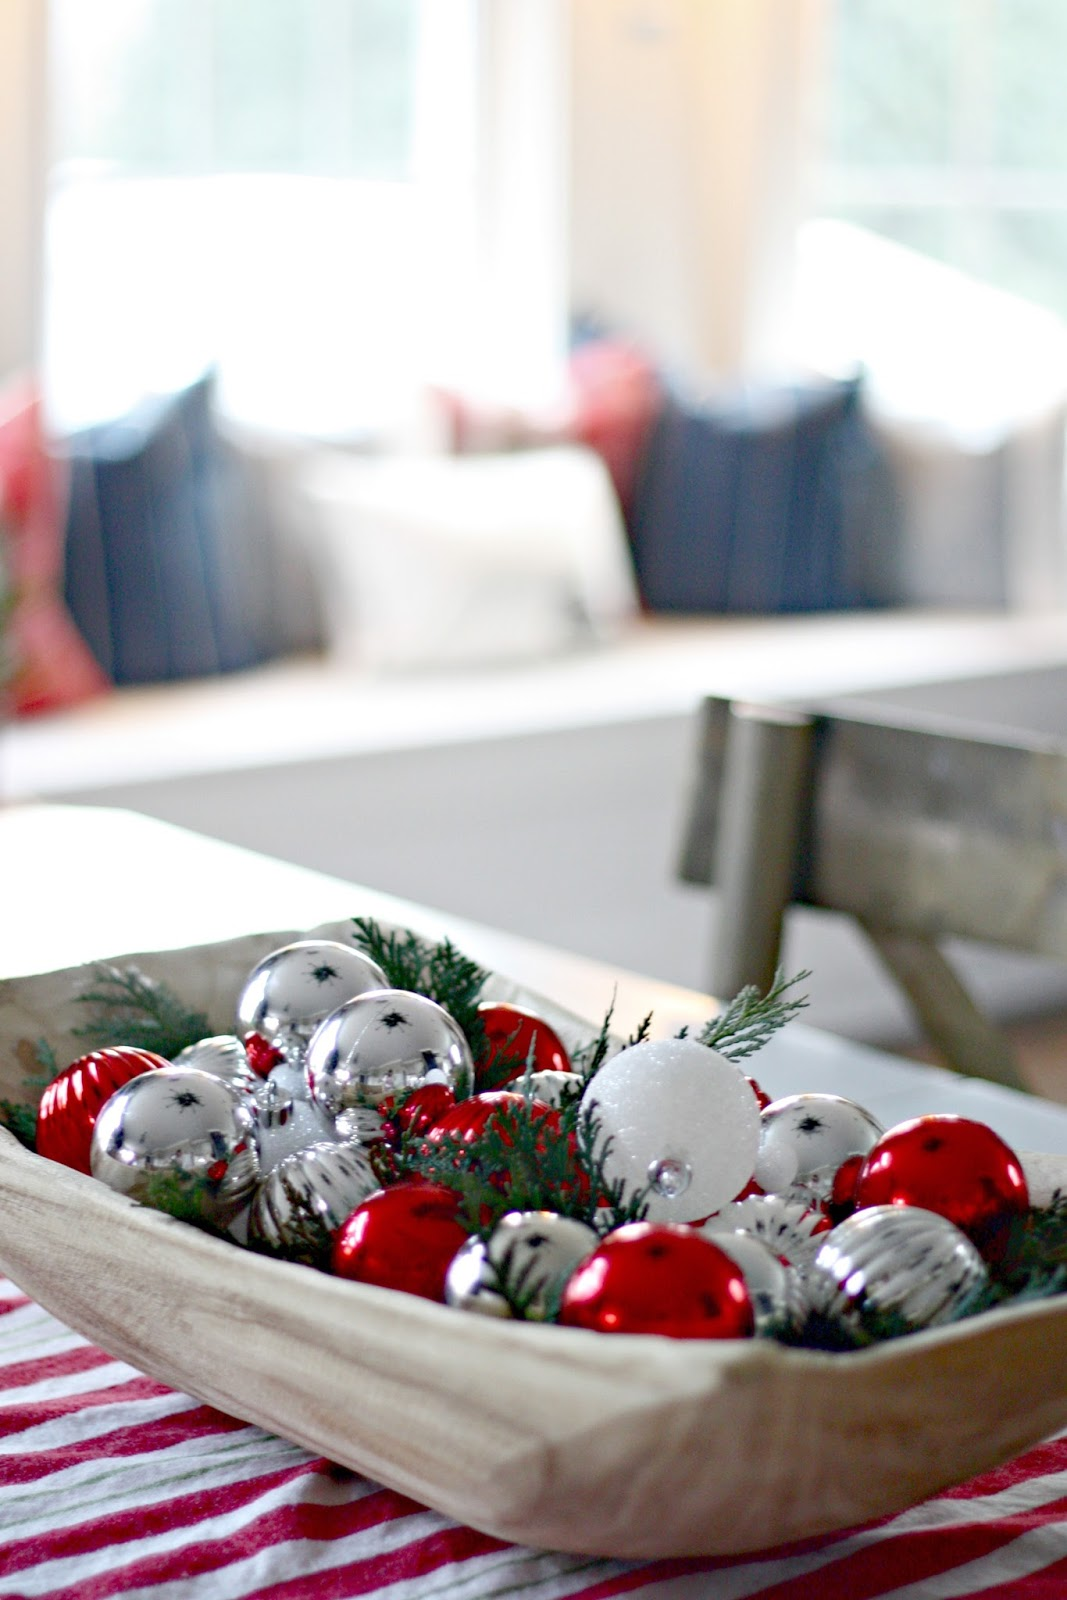 Tour the christmas kitchen from thrifty decor chick for Thrifty decor